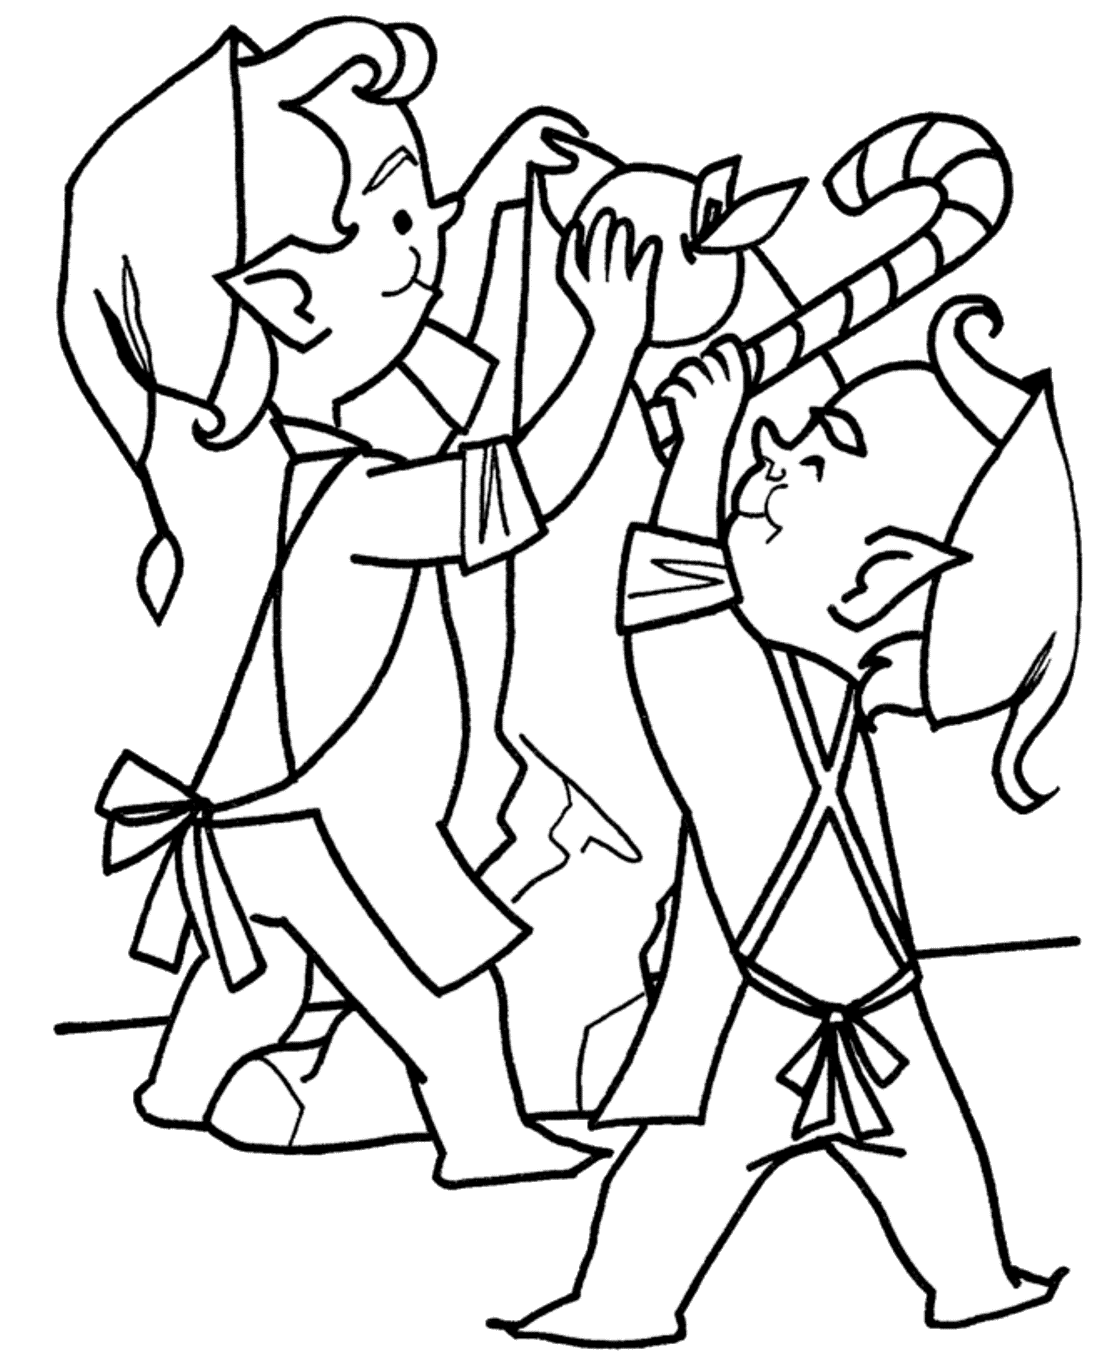 coloring pages elves christmas elf coloring pages printable at getdrawings coloring elves pages